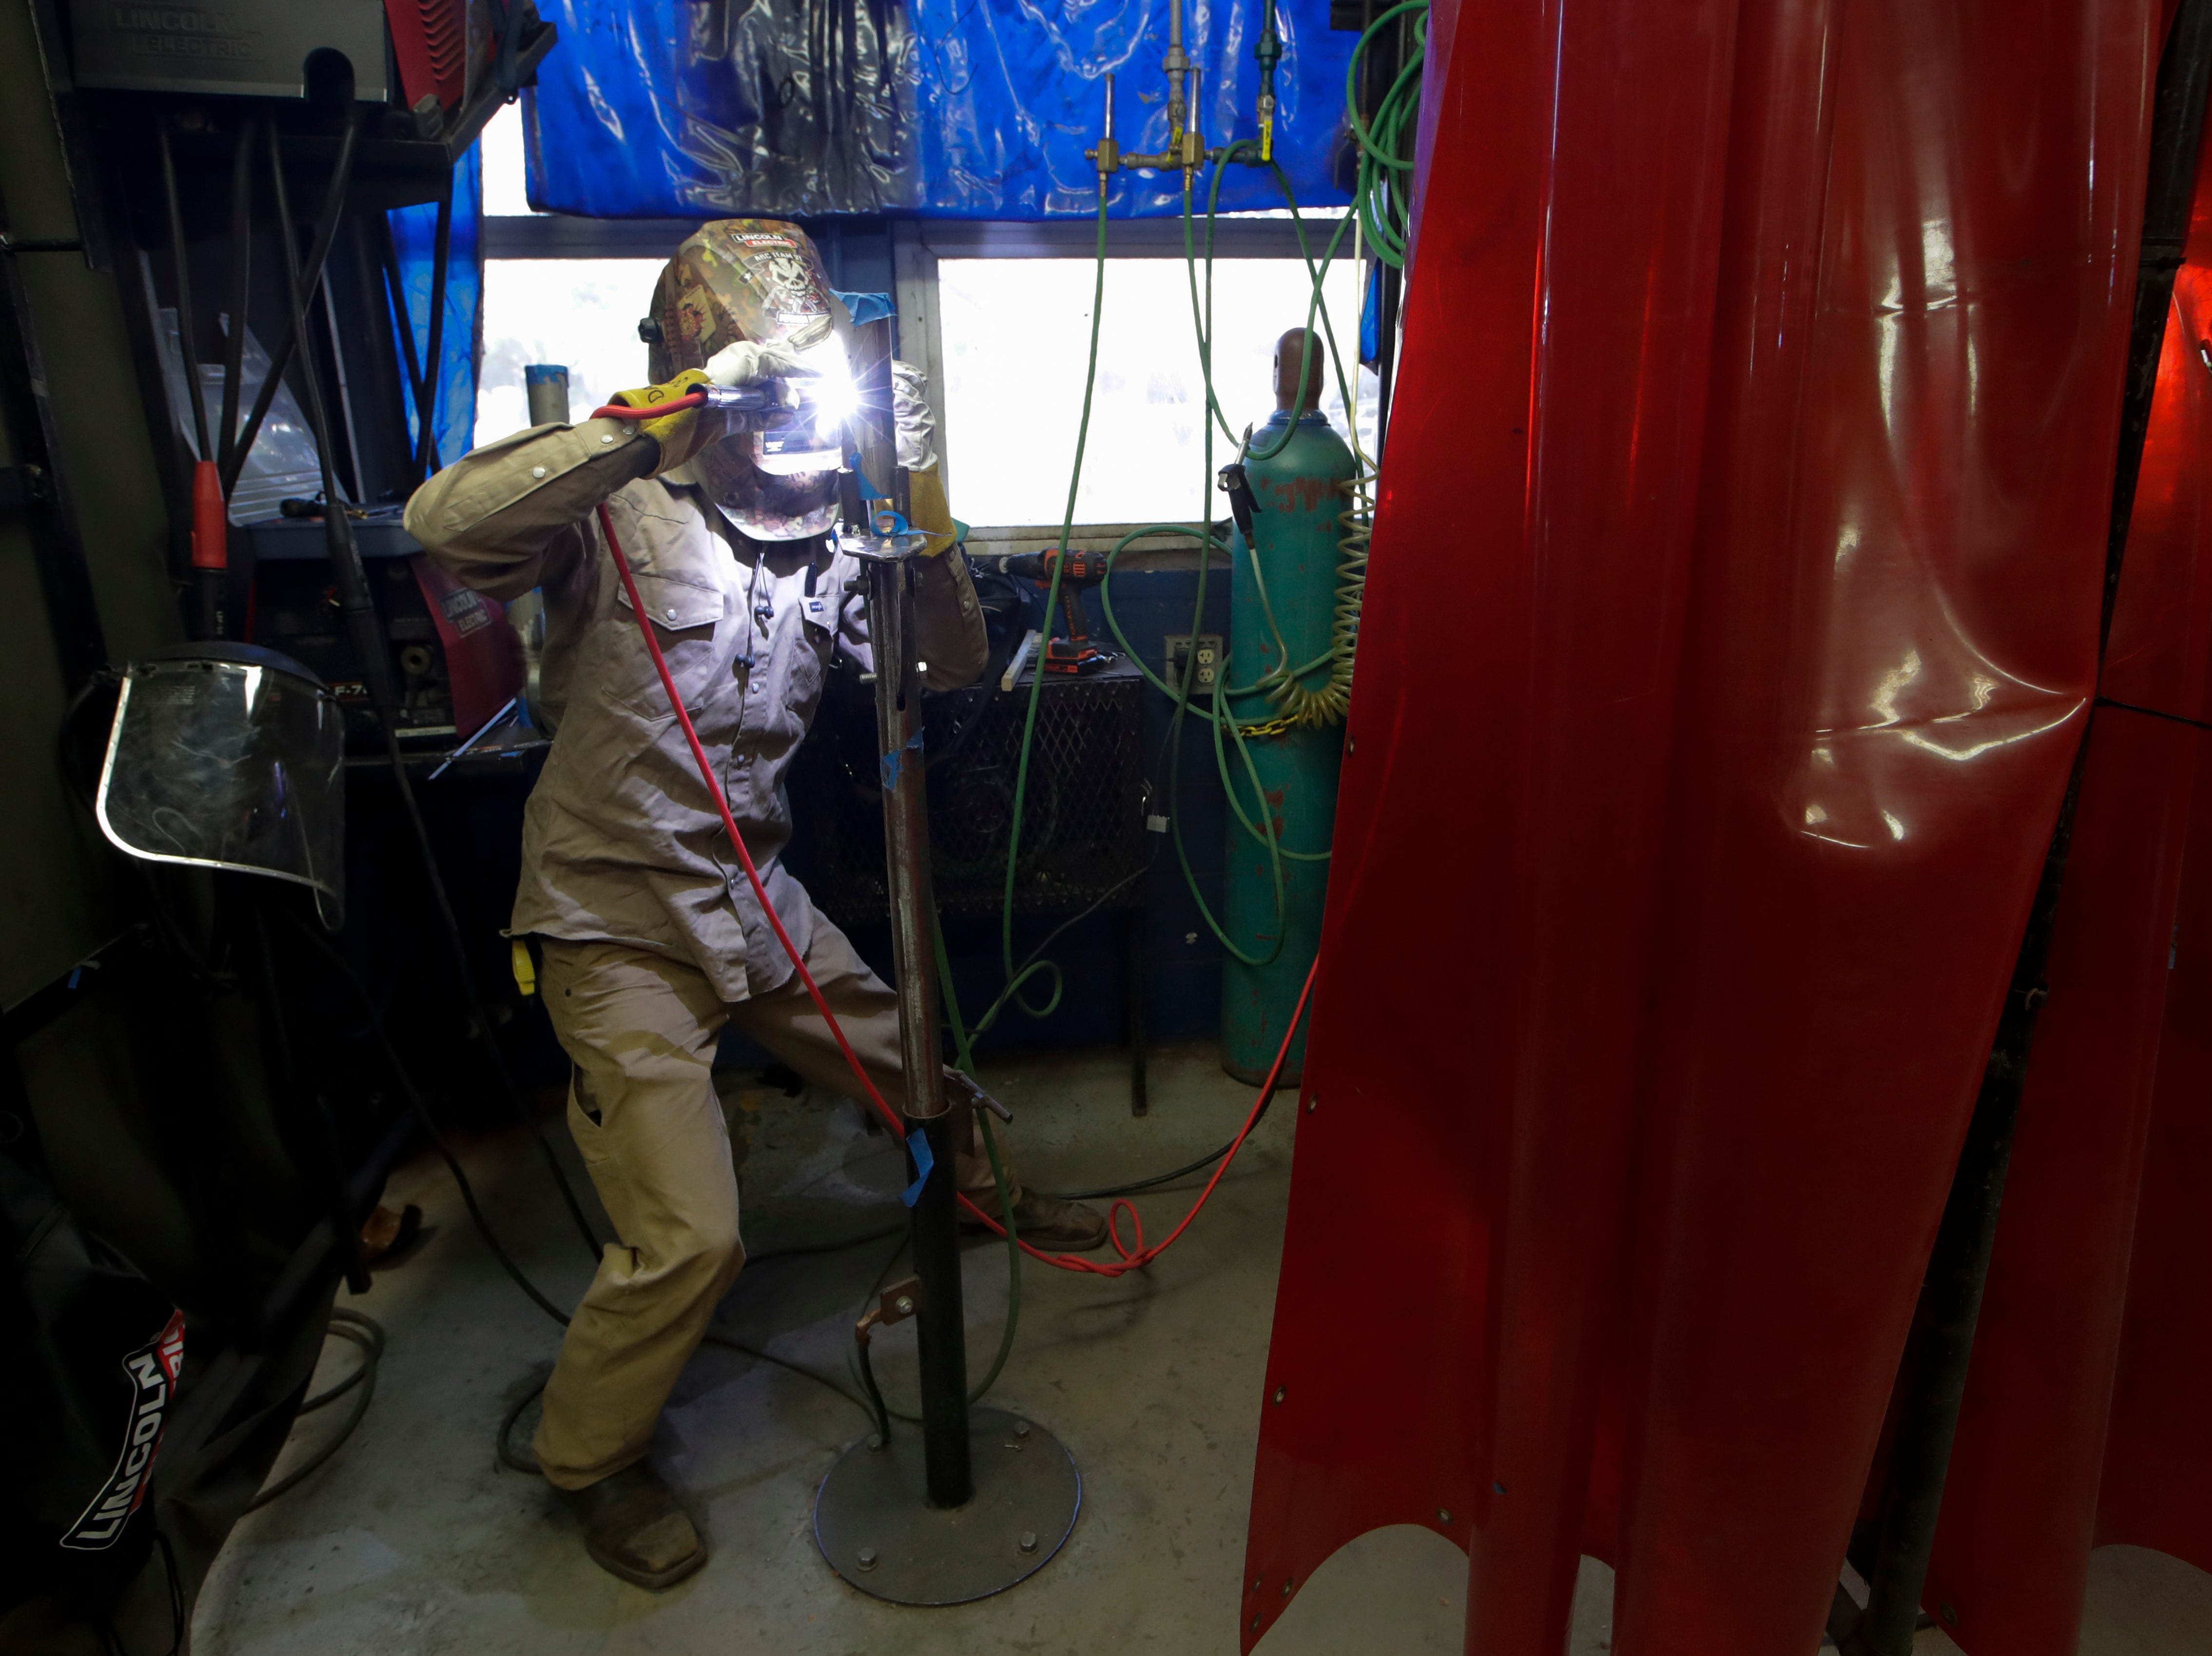 Advanced welding student Hunter Bulls welds Wednesday, Jan. 9, 2019 at Lively Technical Center which has been approved by the Leon County School Board to change it's name to Lively Technical College.